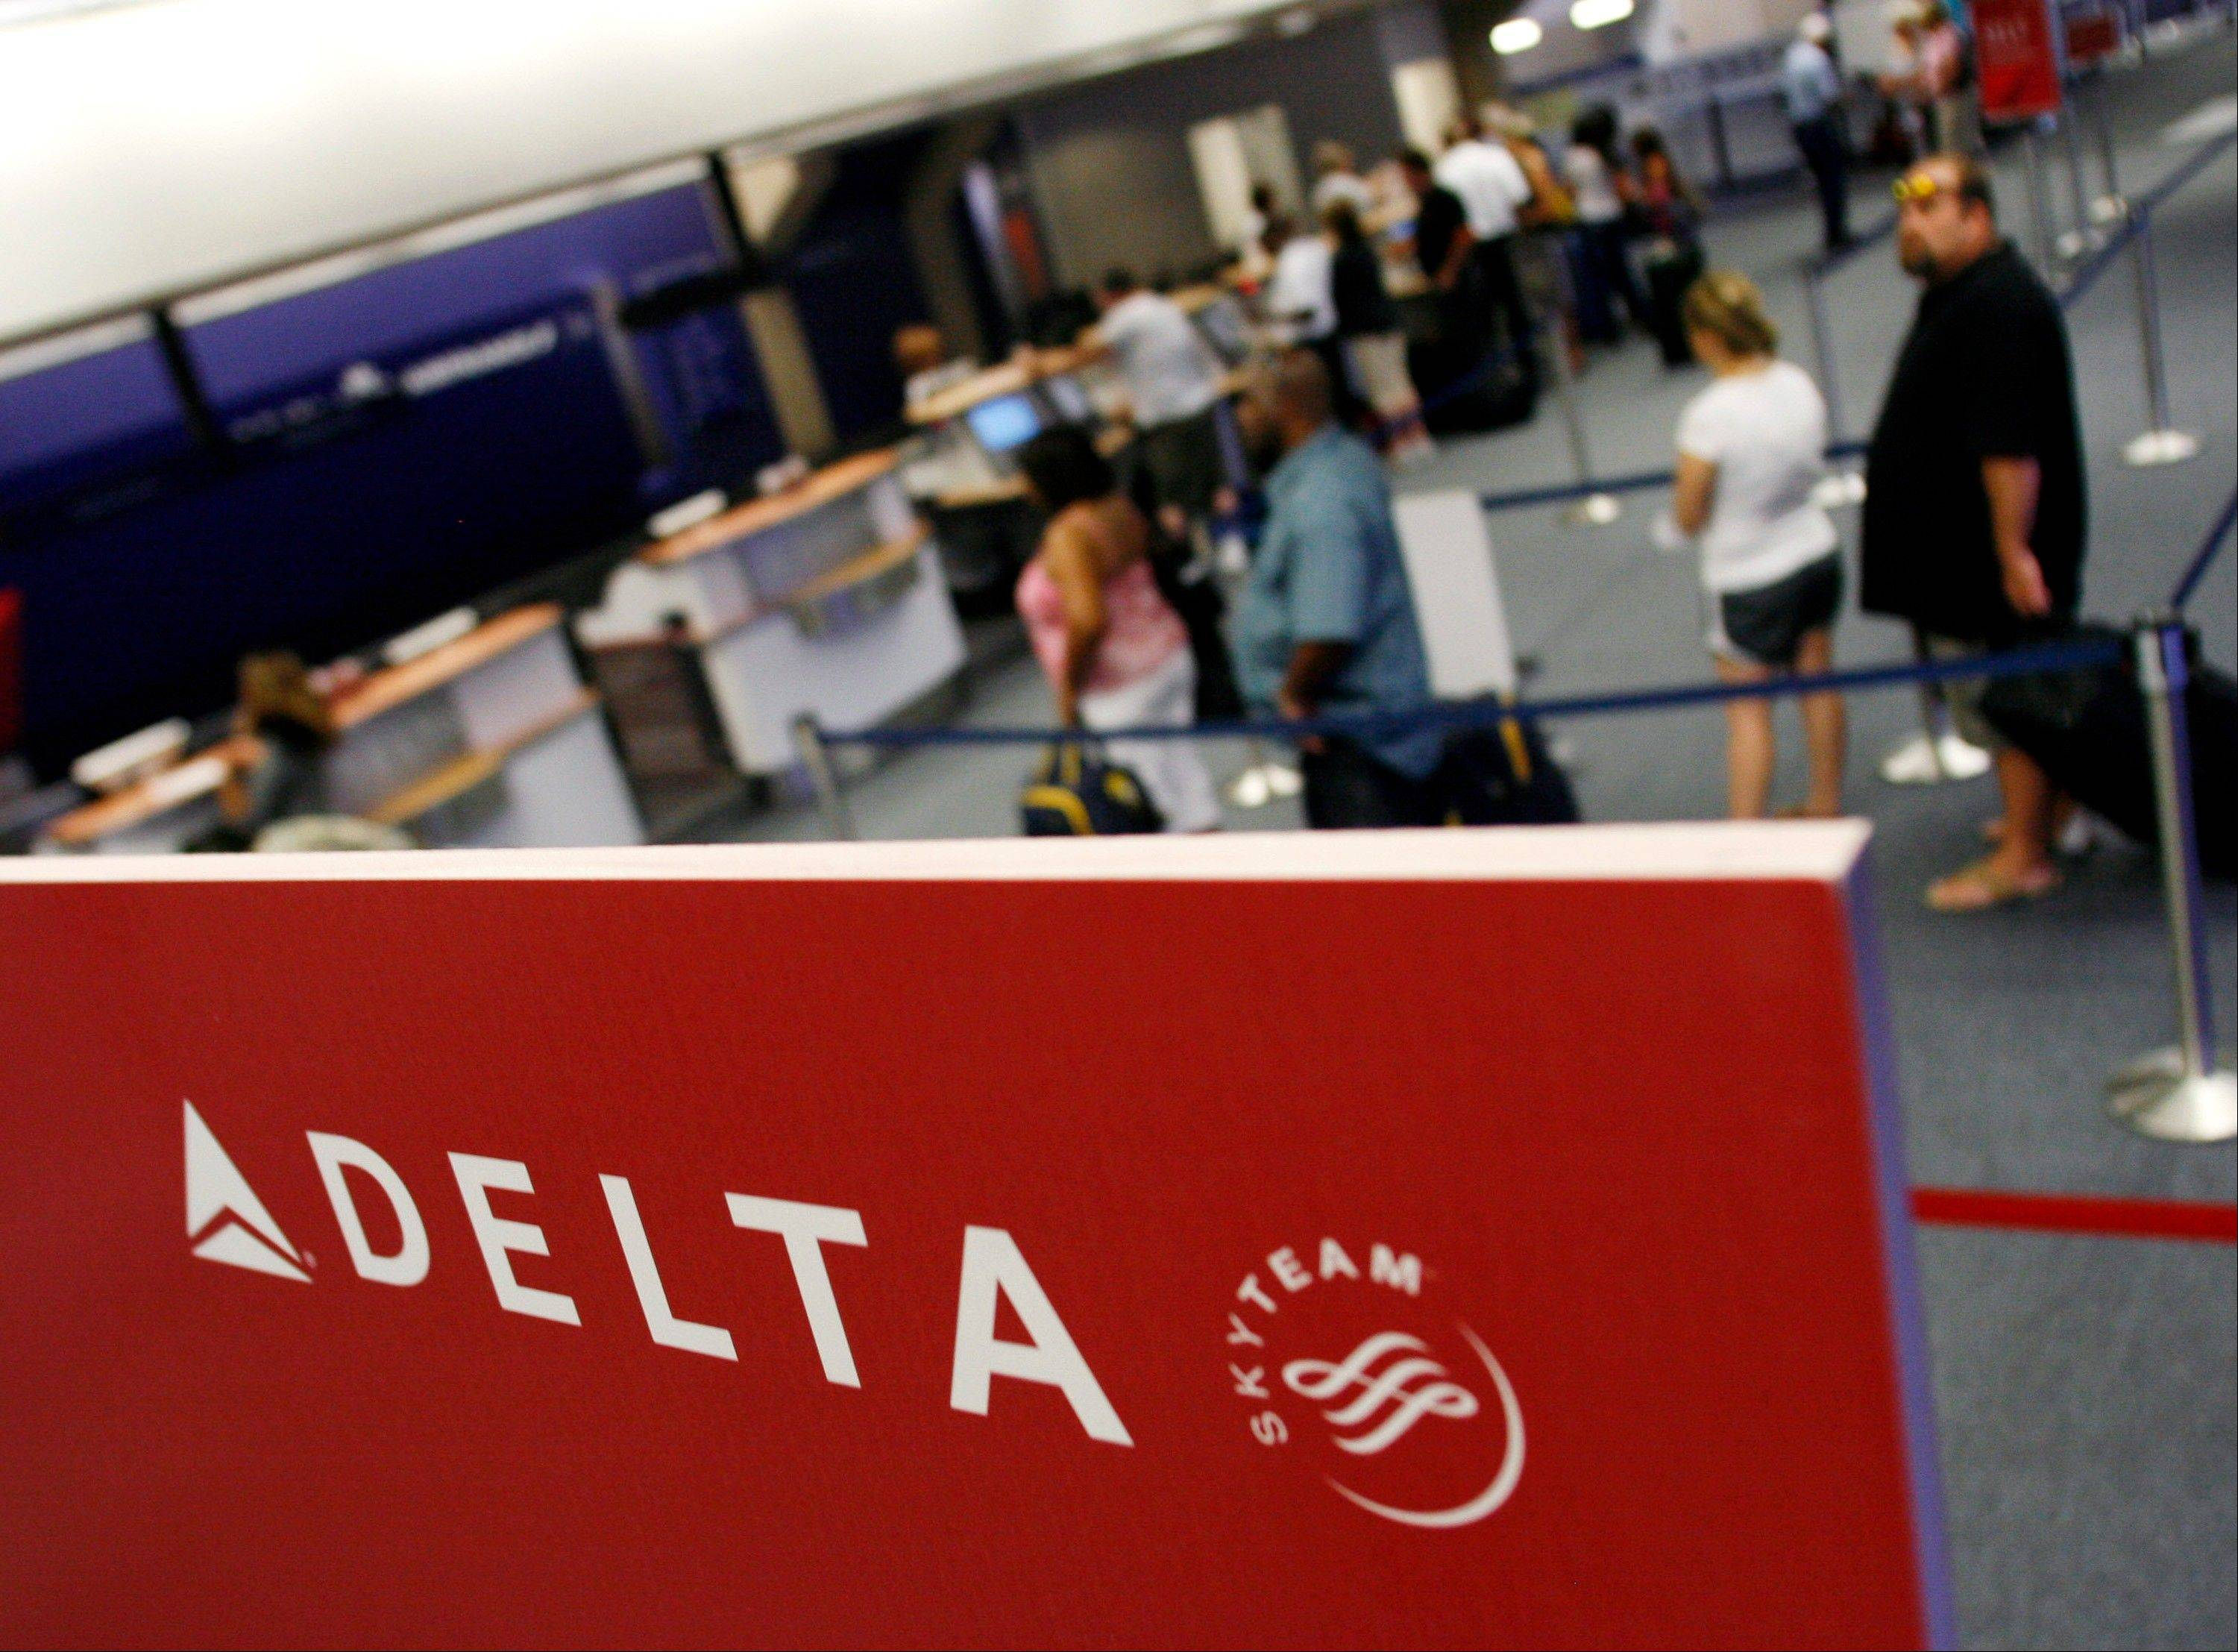 Some lucky fliers capitalized on a computer glitch Thursday and scored some really cheap flights on Delta Air Lines.